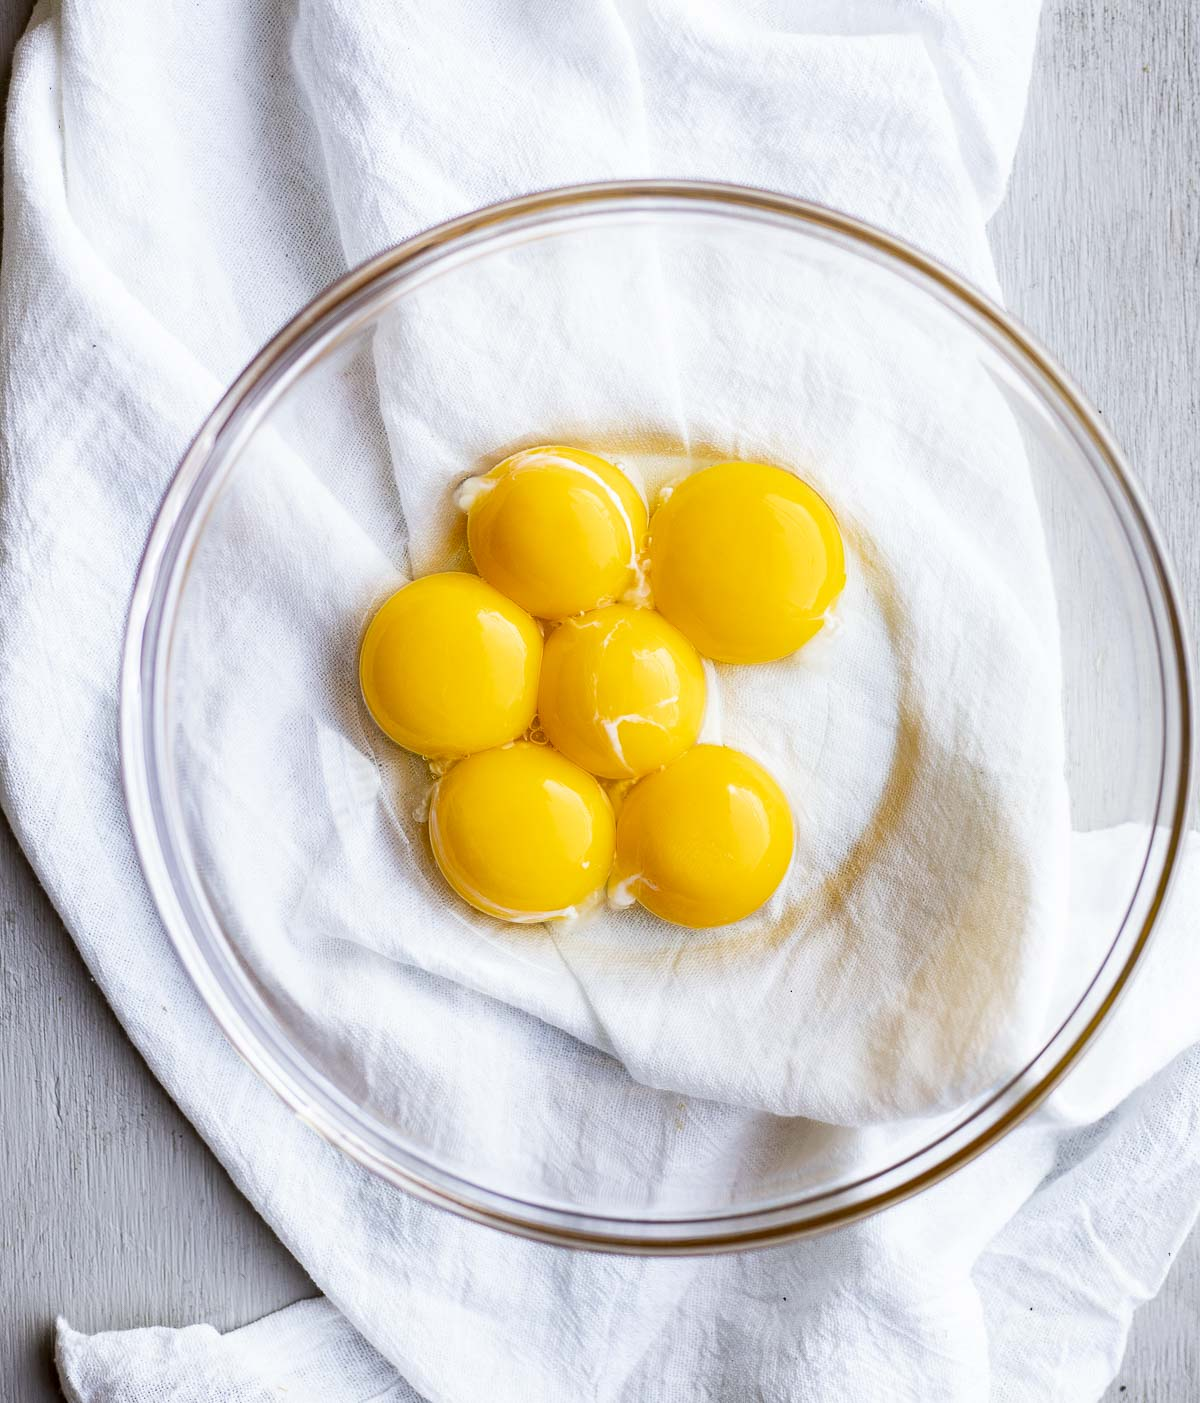 Six egg yolks in a glass bowl.